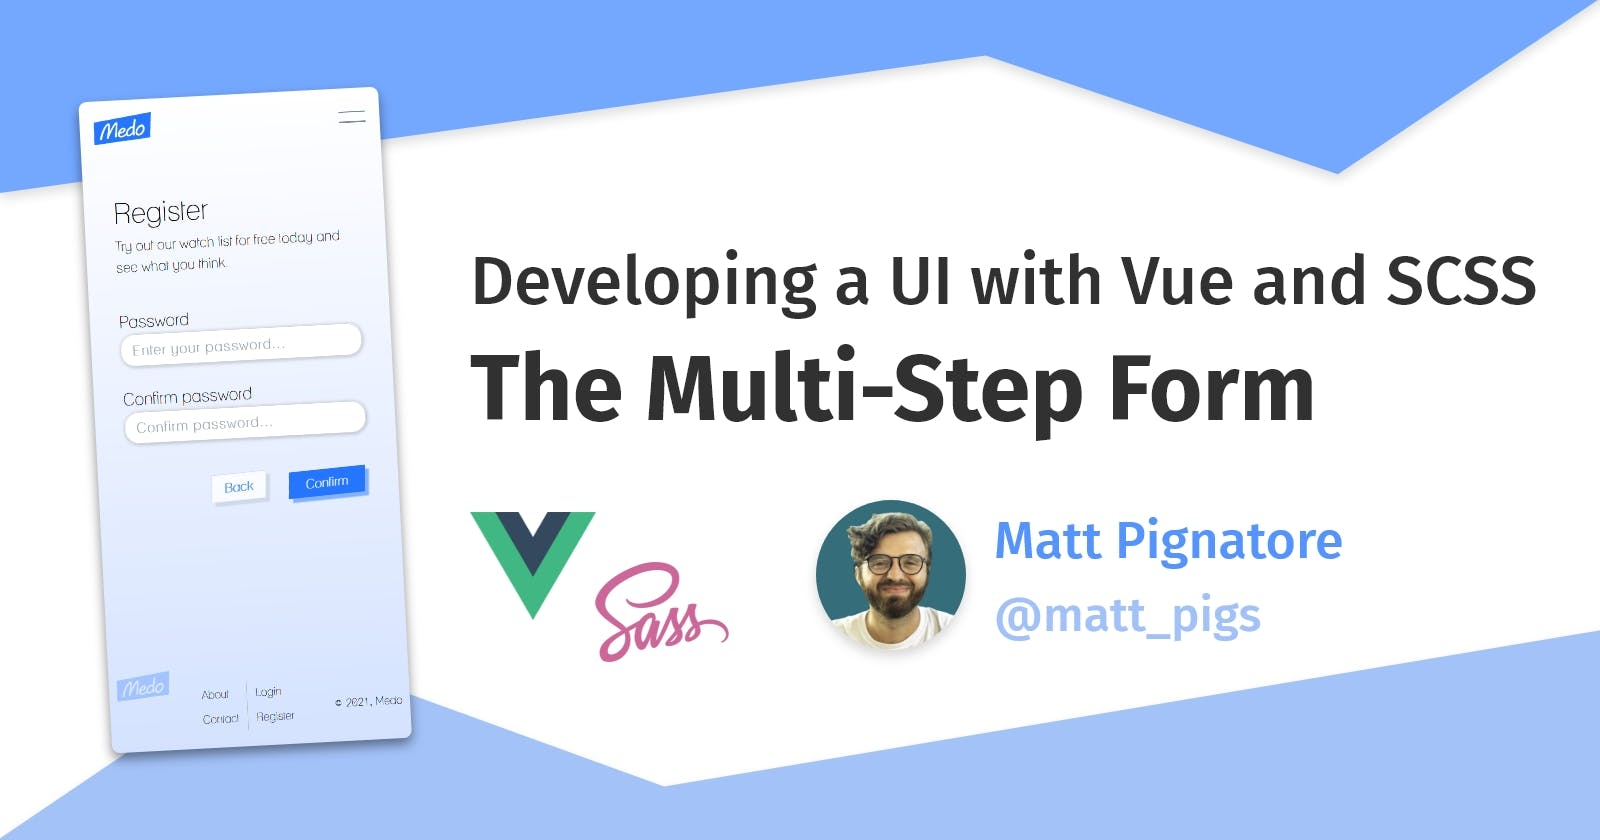 Developing a UI with Vue, Part 5: The Multi-Step Form